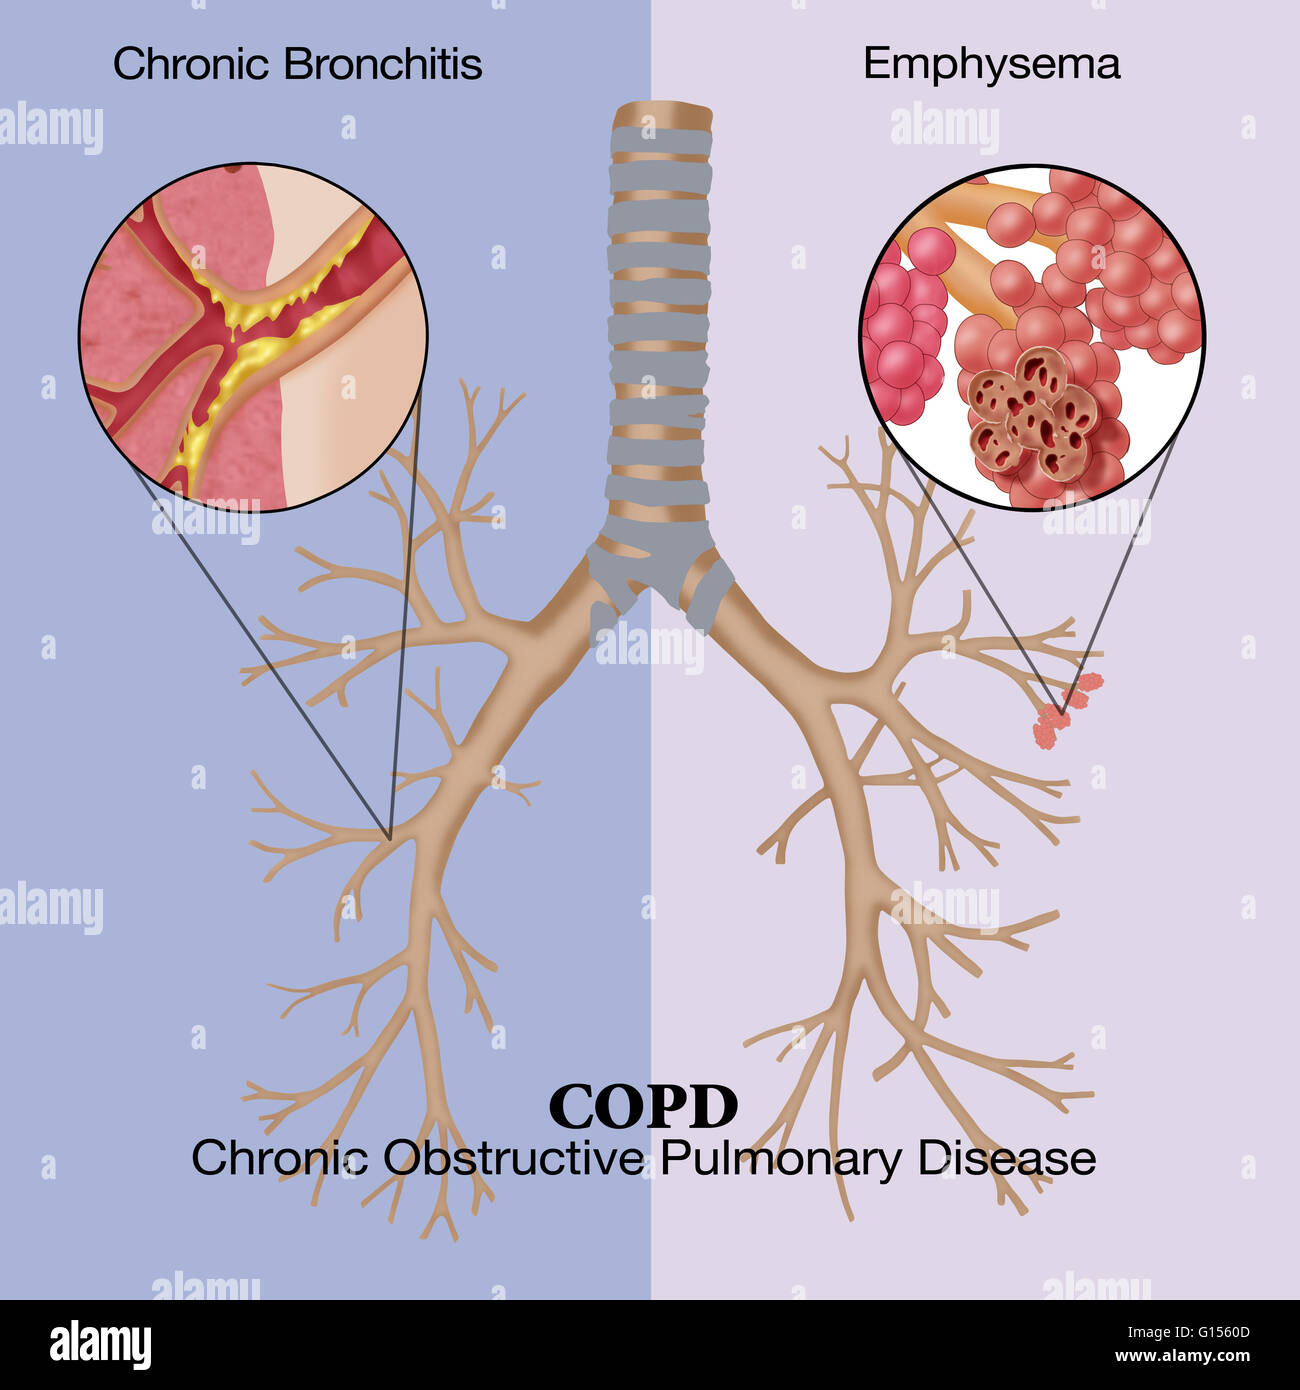 essay on chronic obstructive pulmonary disease Chronic obstructive pulmonary disease (copd) is a type of obstructive lung  disease characterized by long-term breathing problems and poor airflow the  main.